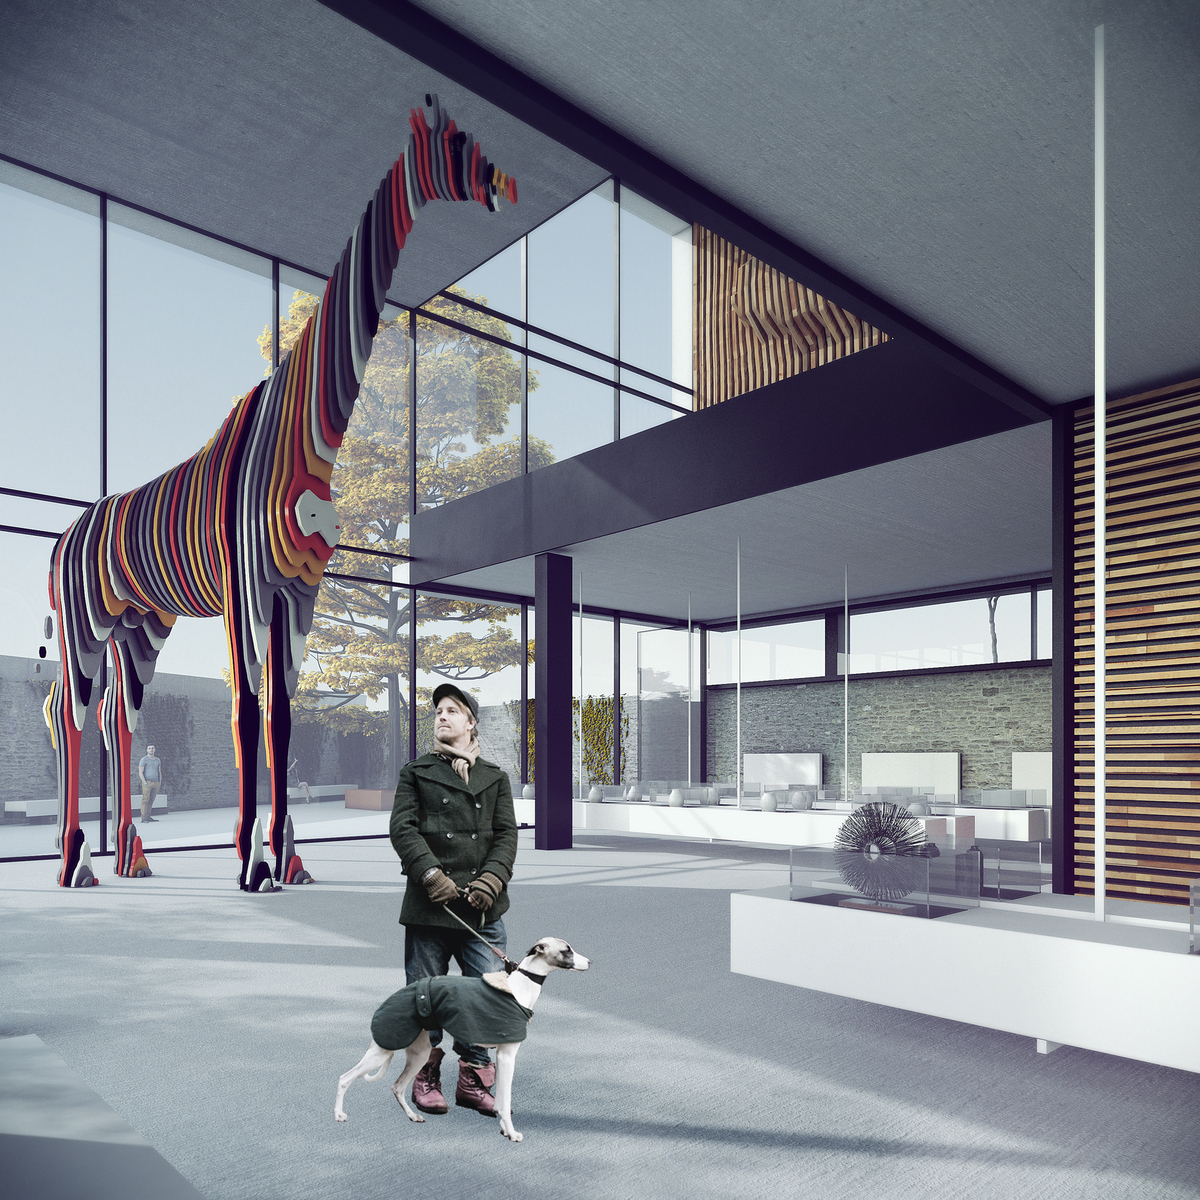 015 – PERSPECTIVE | EXHIBITION HALL - Image Courtesy of ONZ Architects